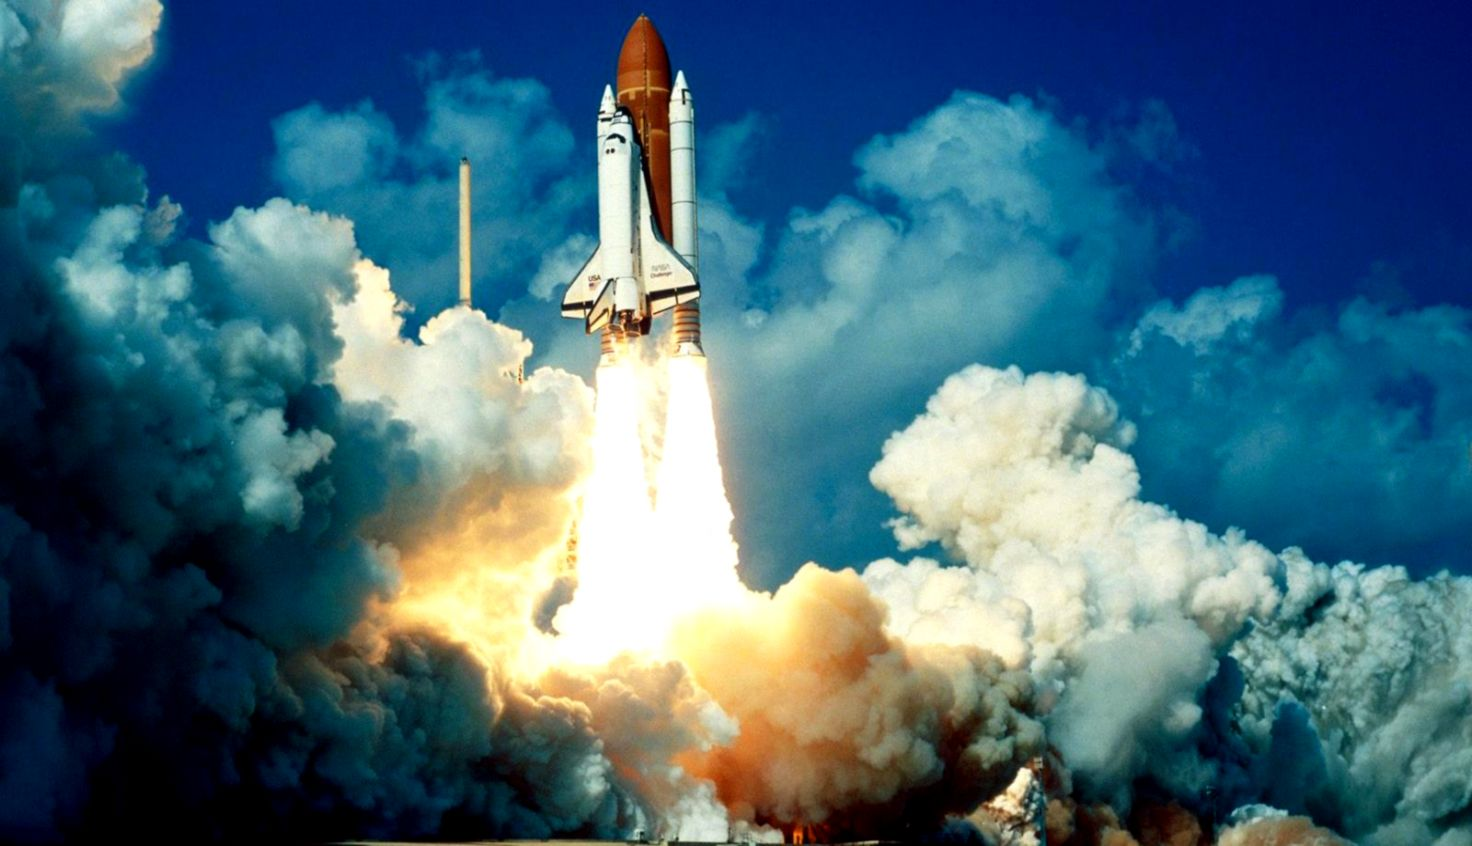 download space shuttle wallpaper gallery